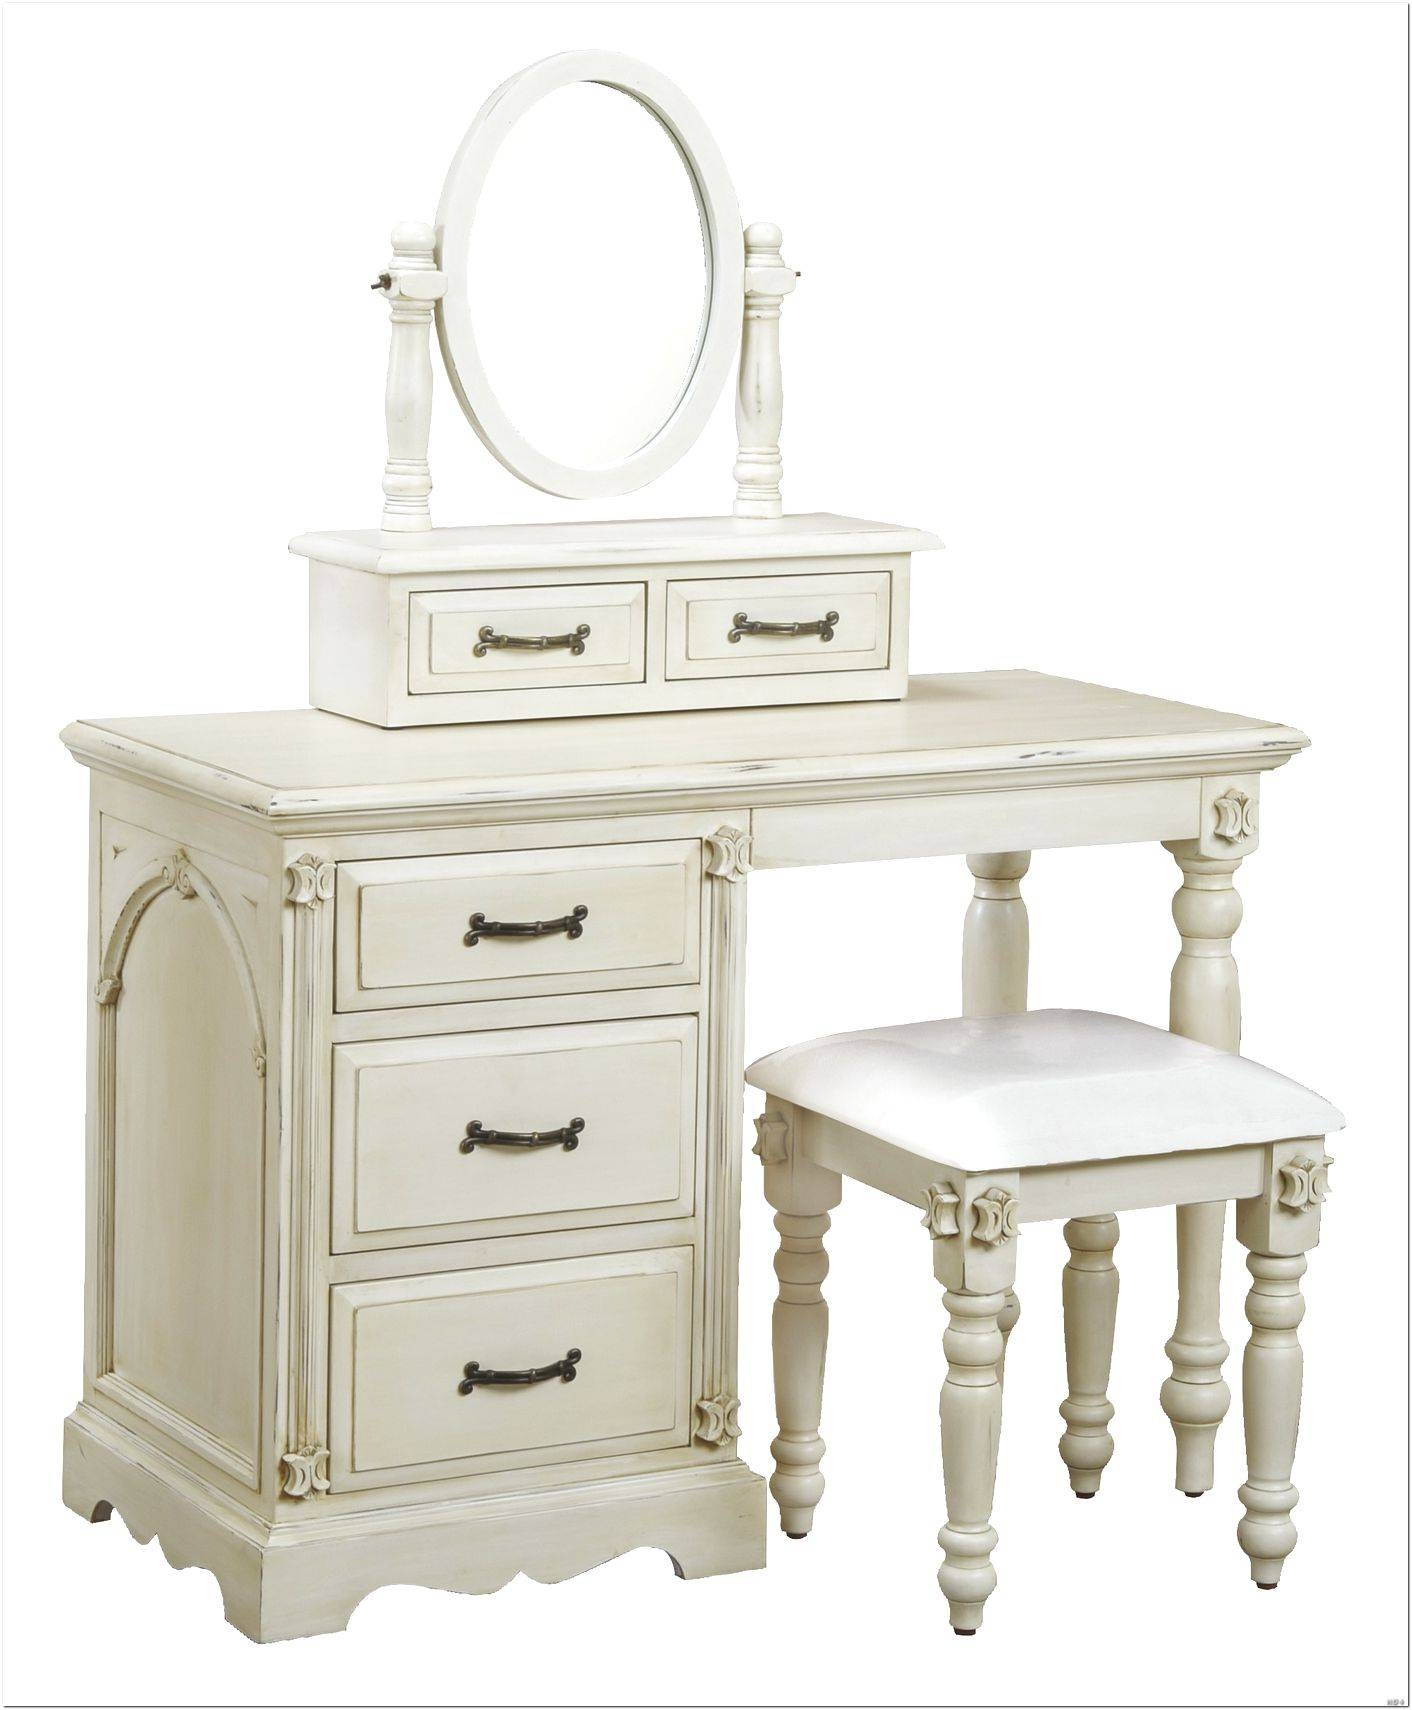 French Style Dressing Table Mirror Design Ideas - Interior Design with regard to French Style Dressing Table Mirrors (Image 15 of 25)